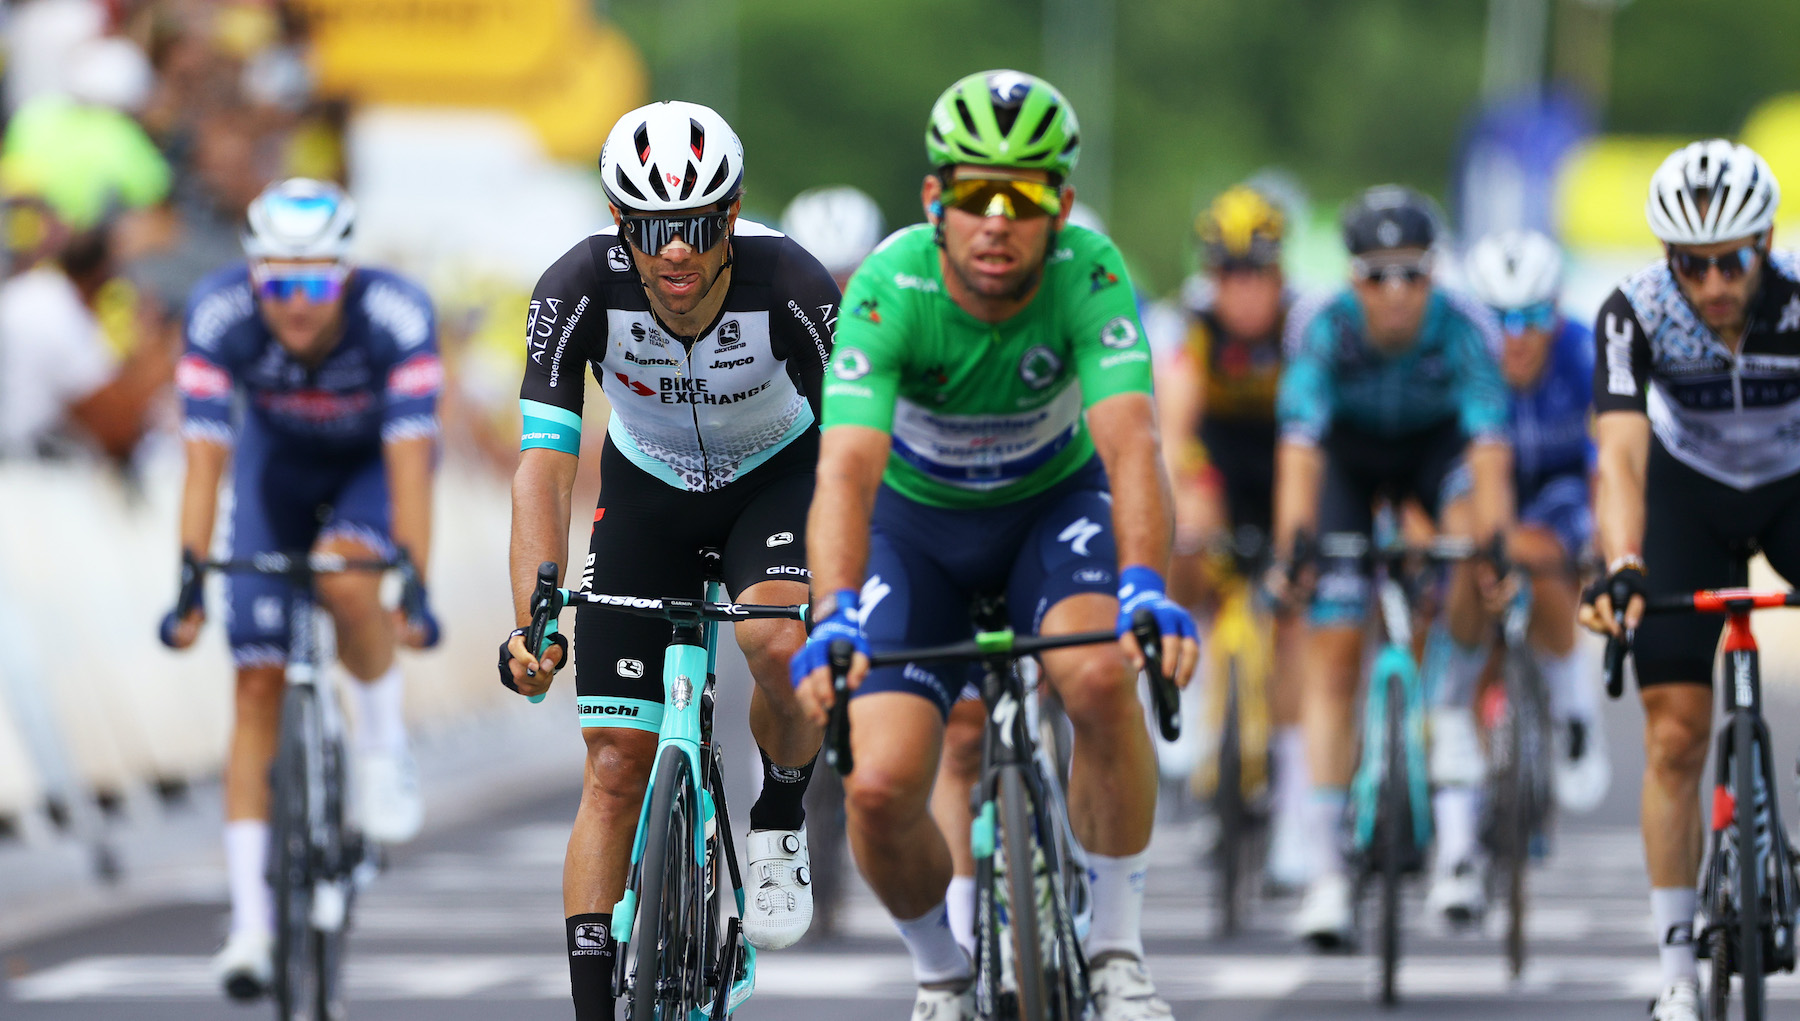 Mark Cavendish at the finish of stage 12 of the 2021 Tour